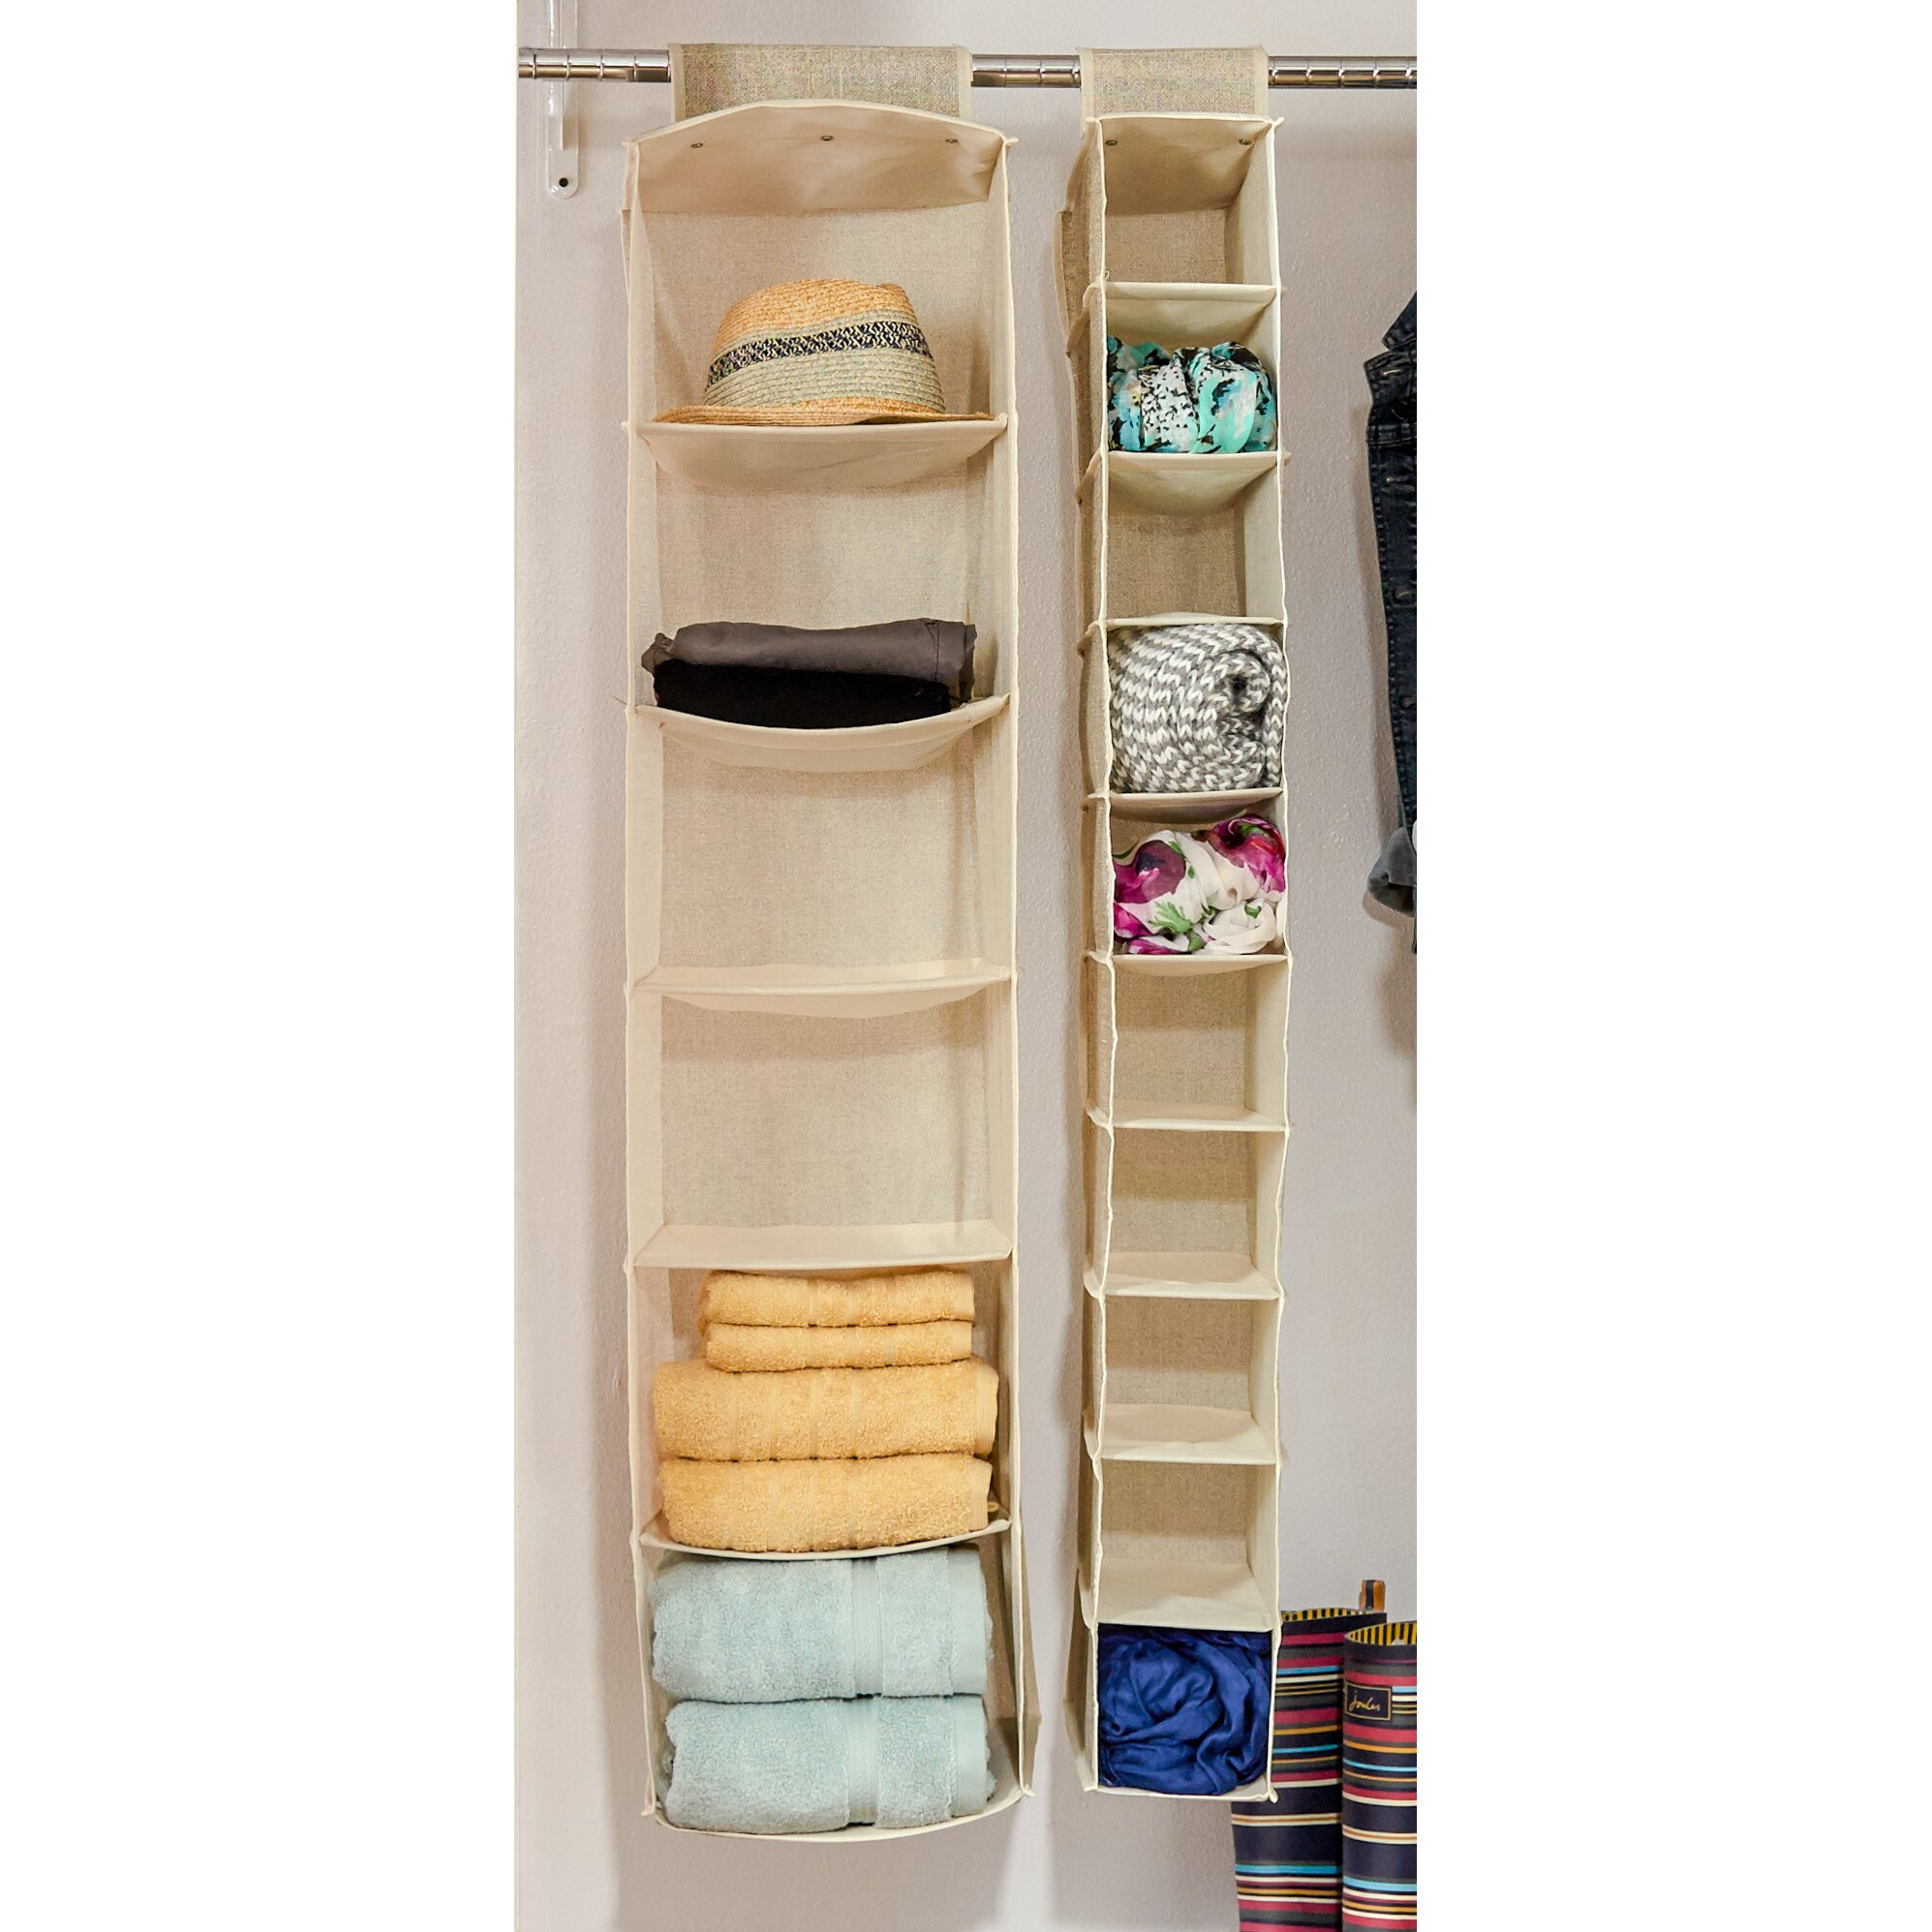 Wayfair Basics Wayfair Basics 10 Compartment Hanging Shoe